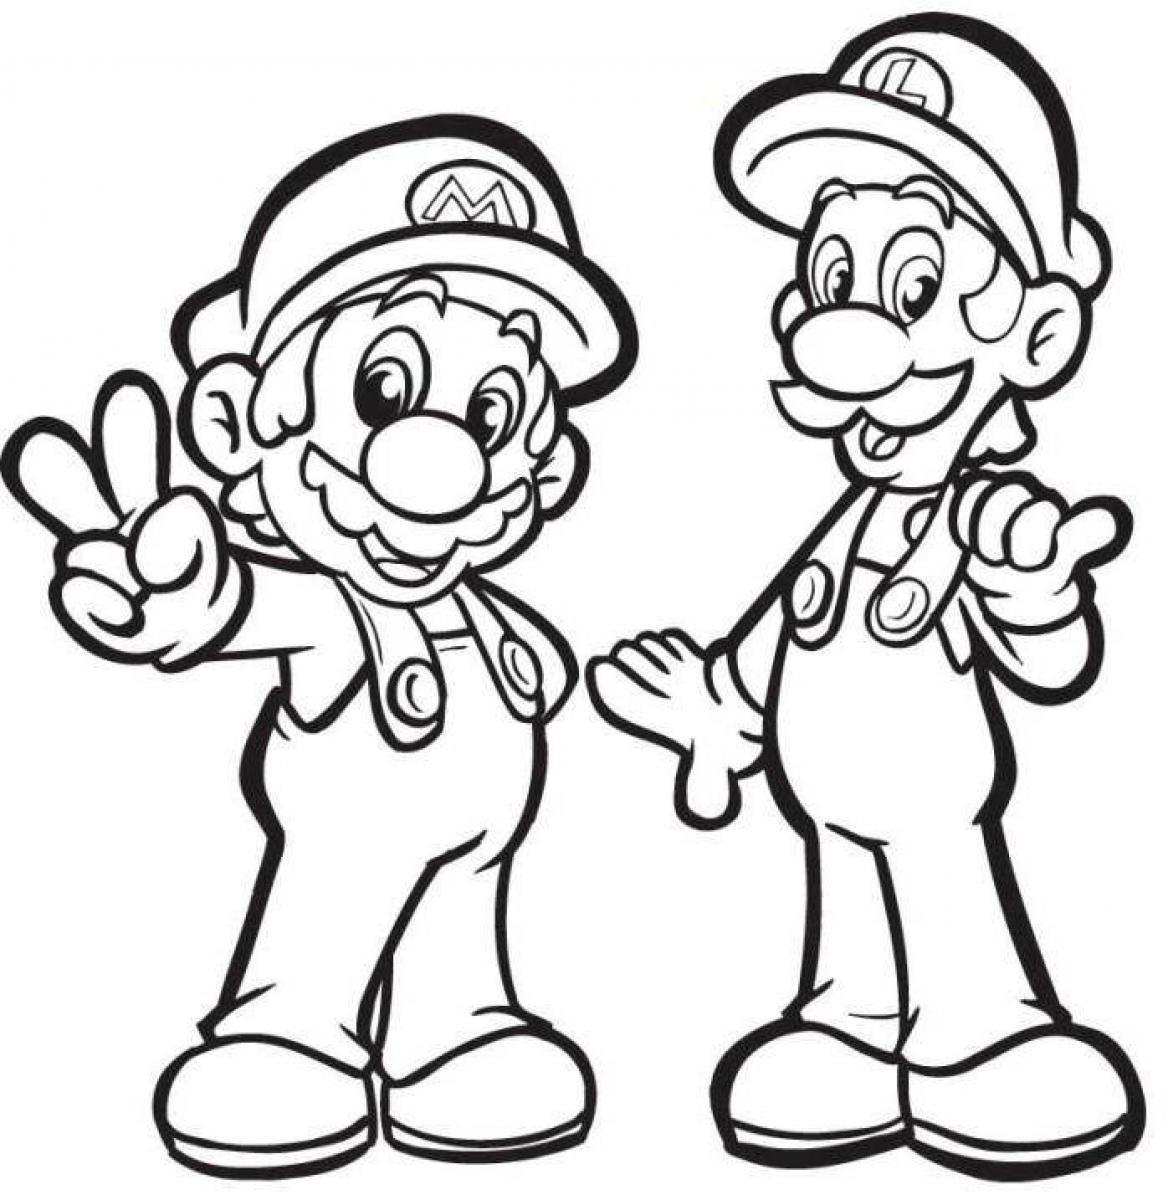 Pikmin 3 coloring pages - Yoshi And Mario Coloring Pages For Kids And For Adults